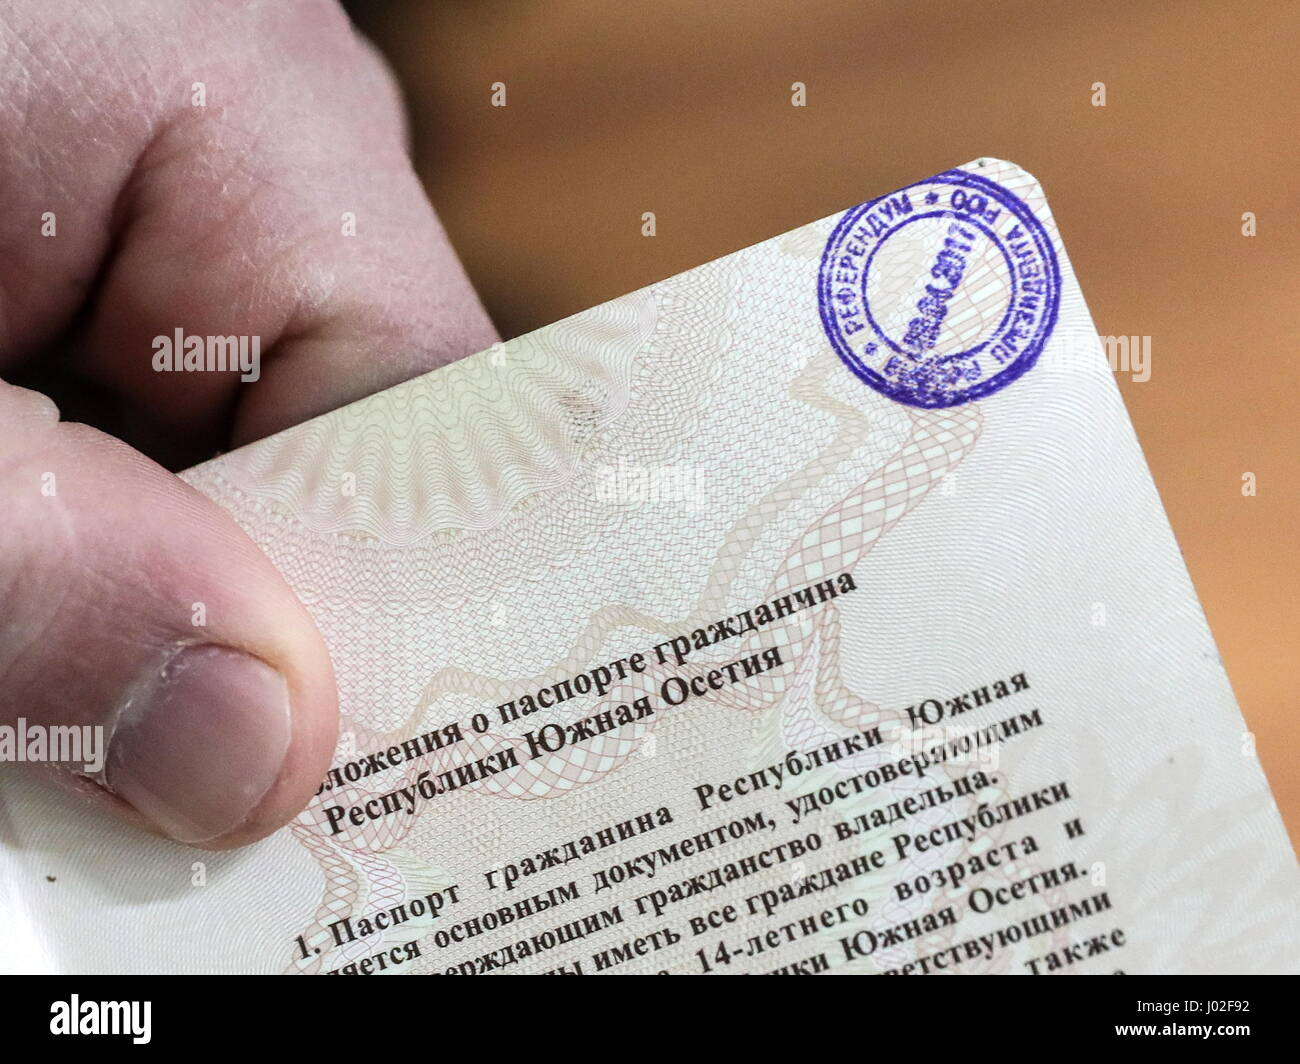 Tskhinval, South Ossetia. 9th Apr, 2017. An election mark on a South Ossetian passport during the 2017 South Ossetian - Stock Image